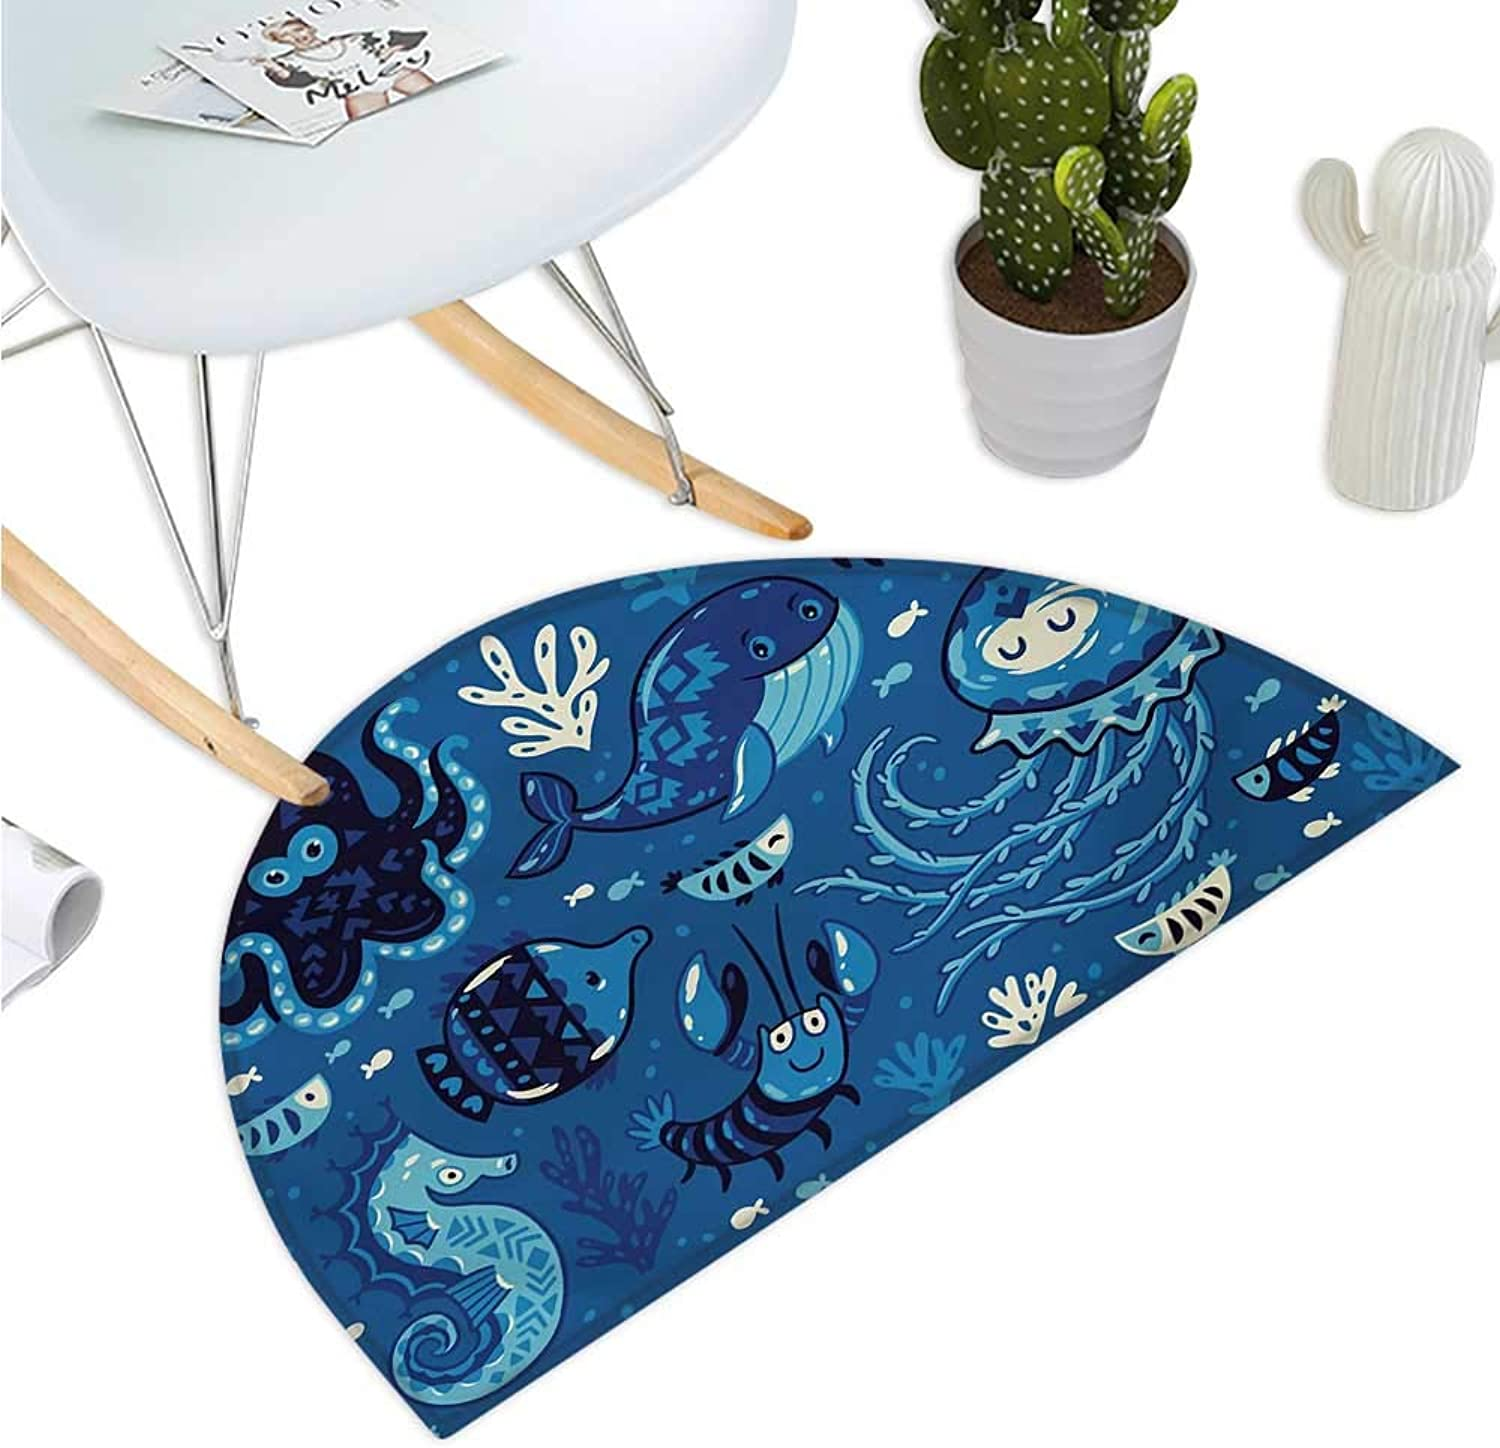 Ocean Semicircle Doormat Deep Sealife with Cute Sweet Cartoon Style Animals Little Whale Fish Octopus and Moss Print Halfmoon doormats H 39.3  xD 59  bluee